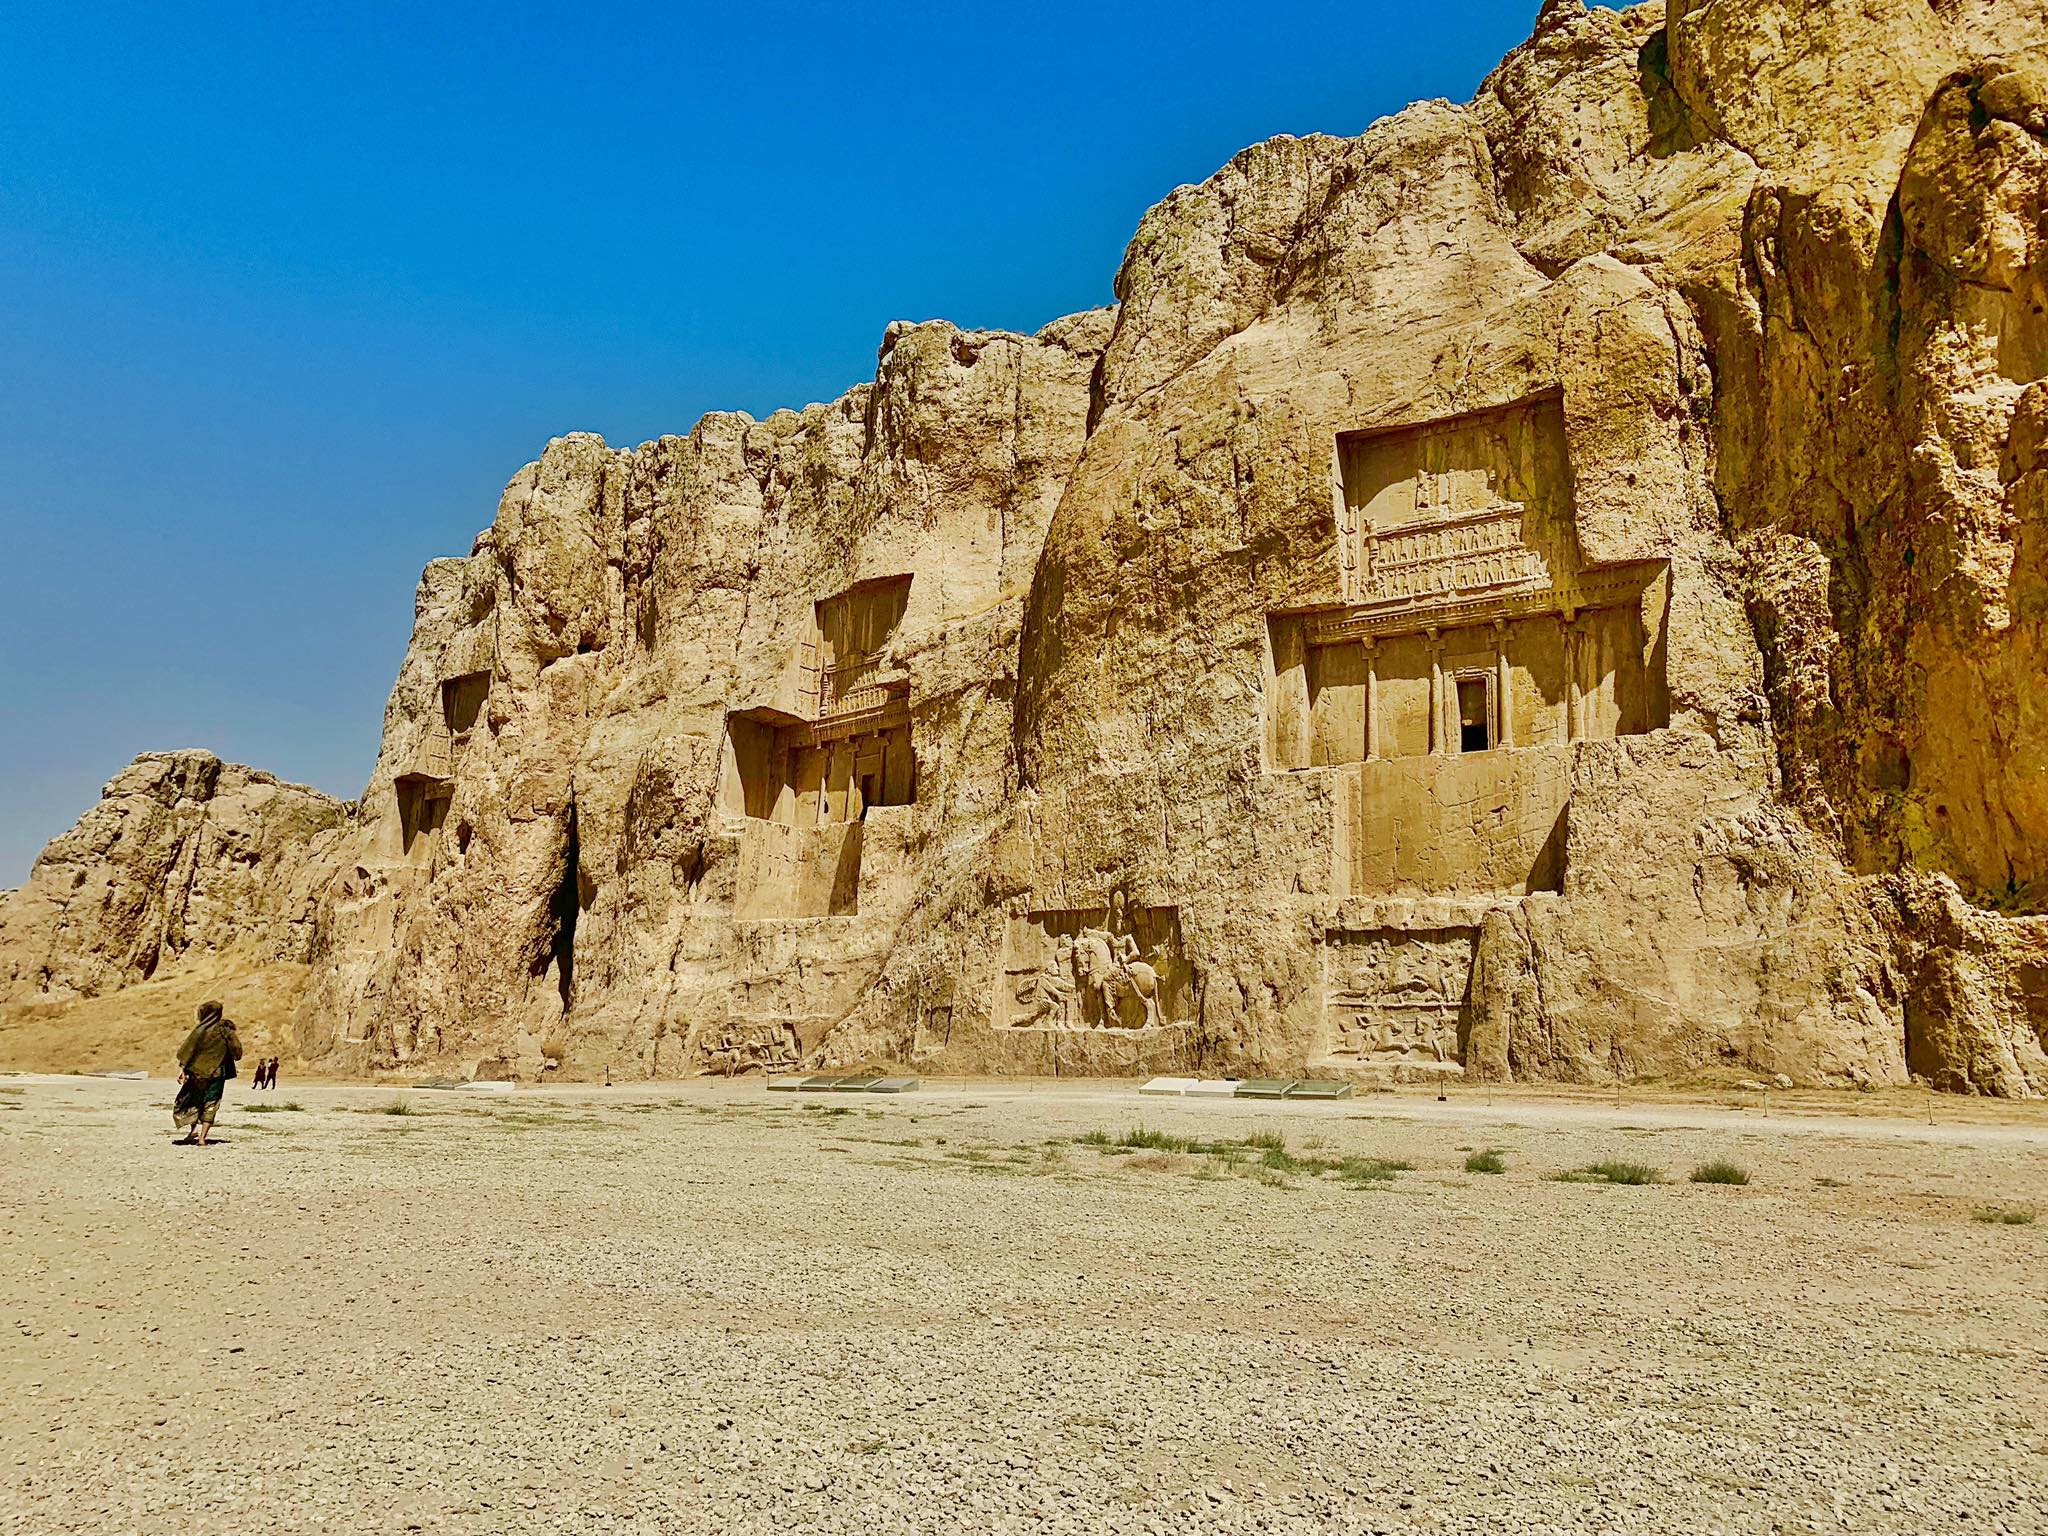 Kach Solo Travels in 2019 UNESCO heritages sites of Persepolis and Pasagardae3.jpg